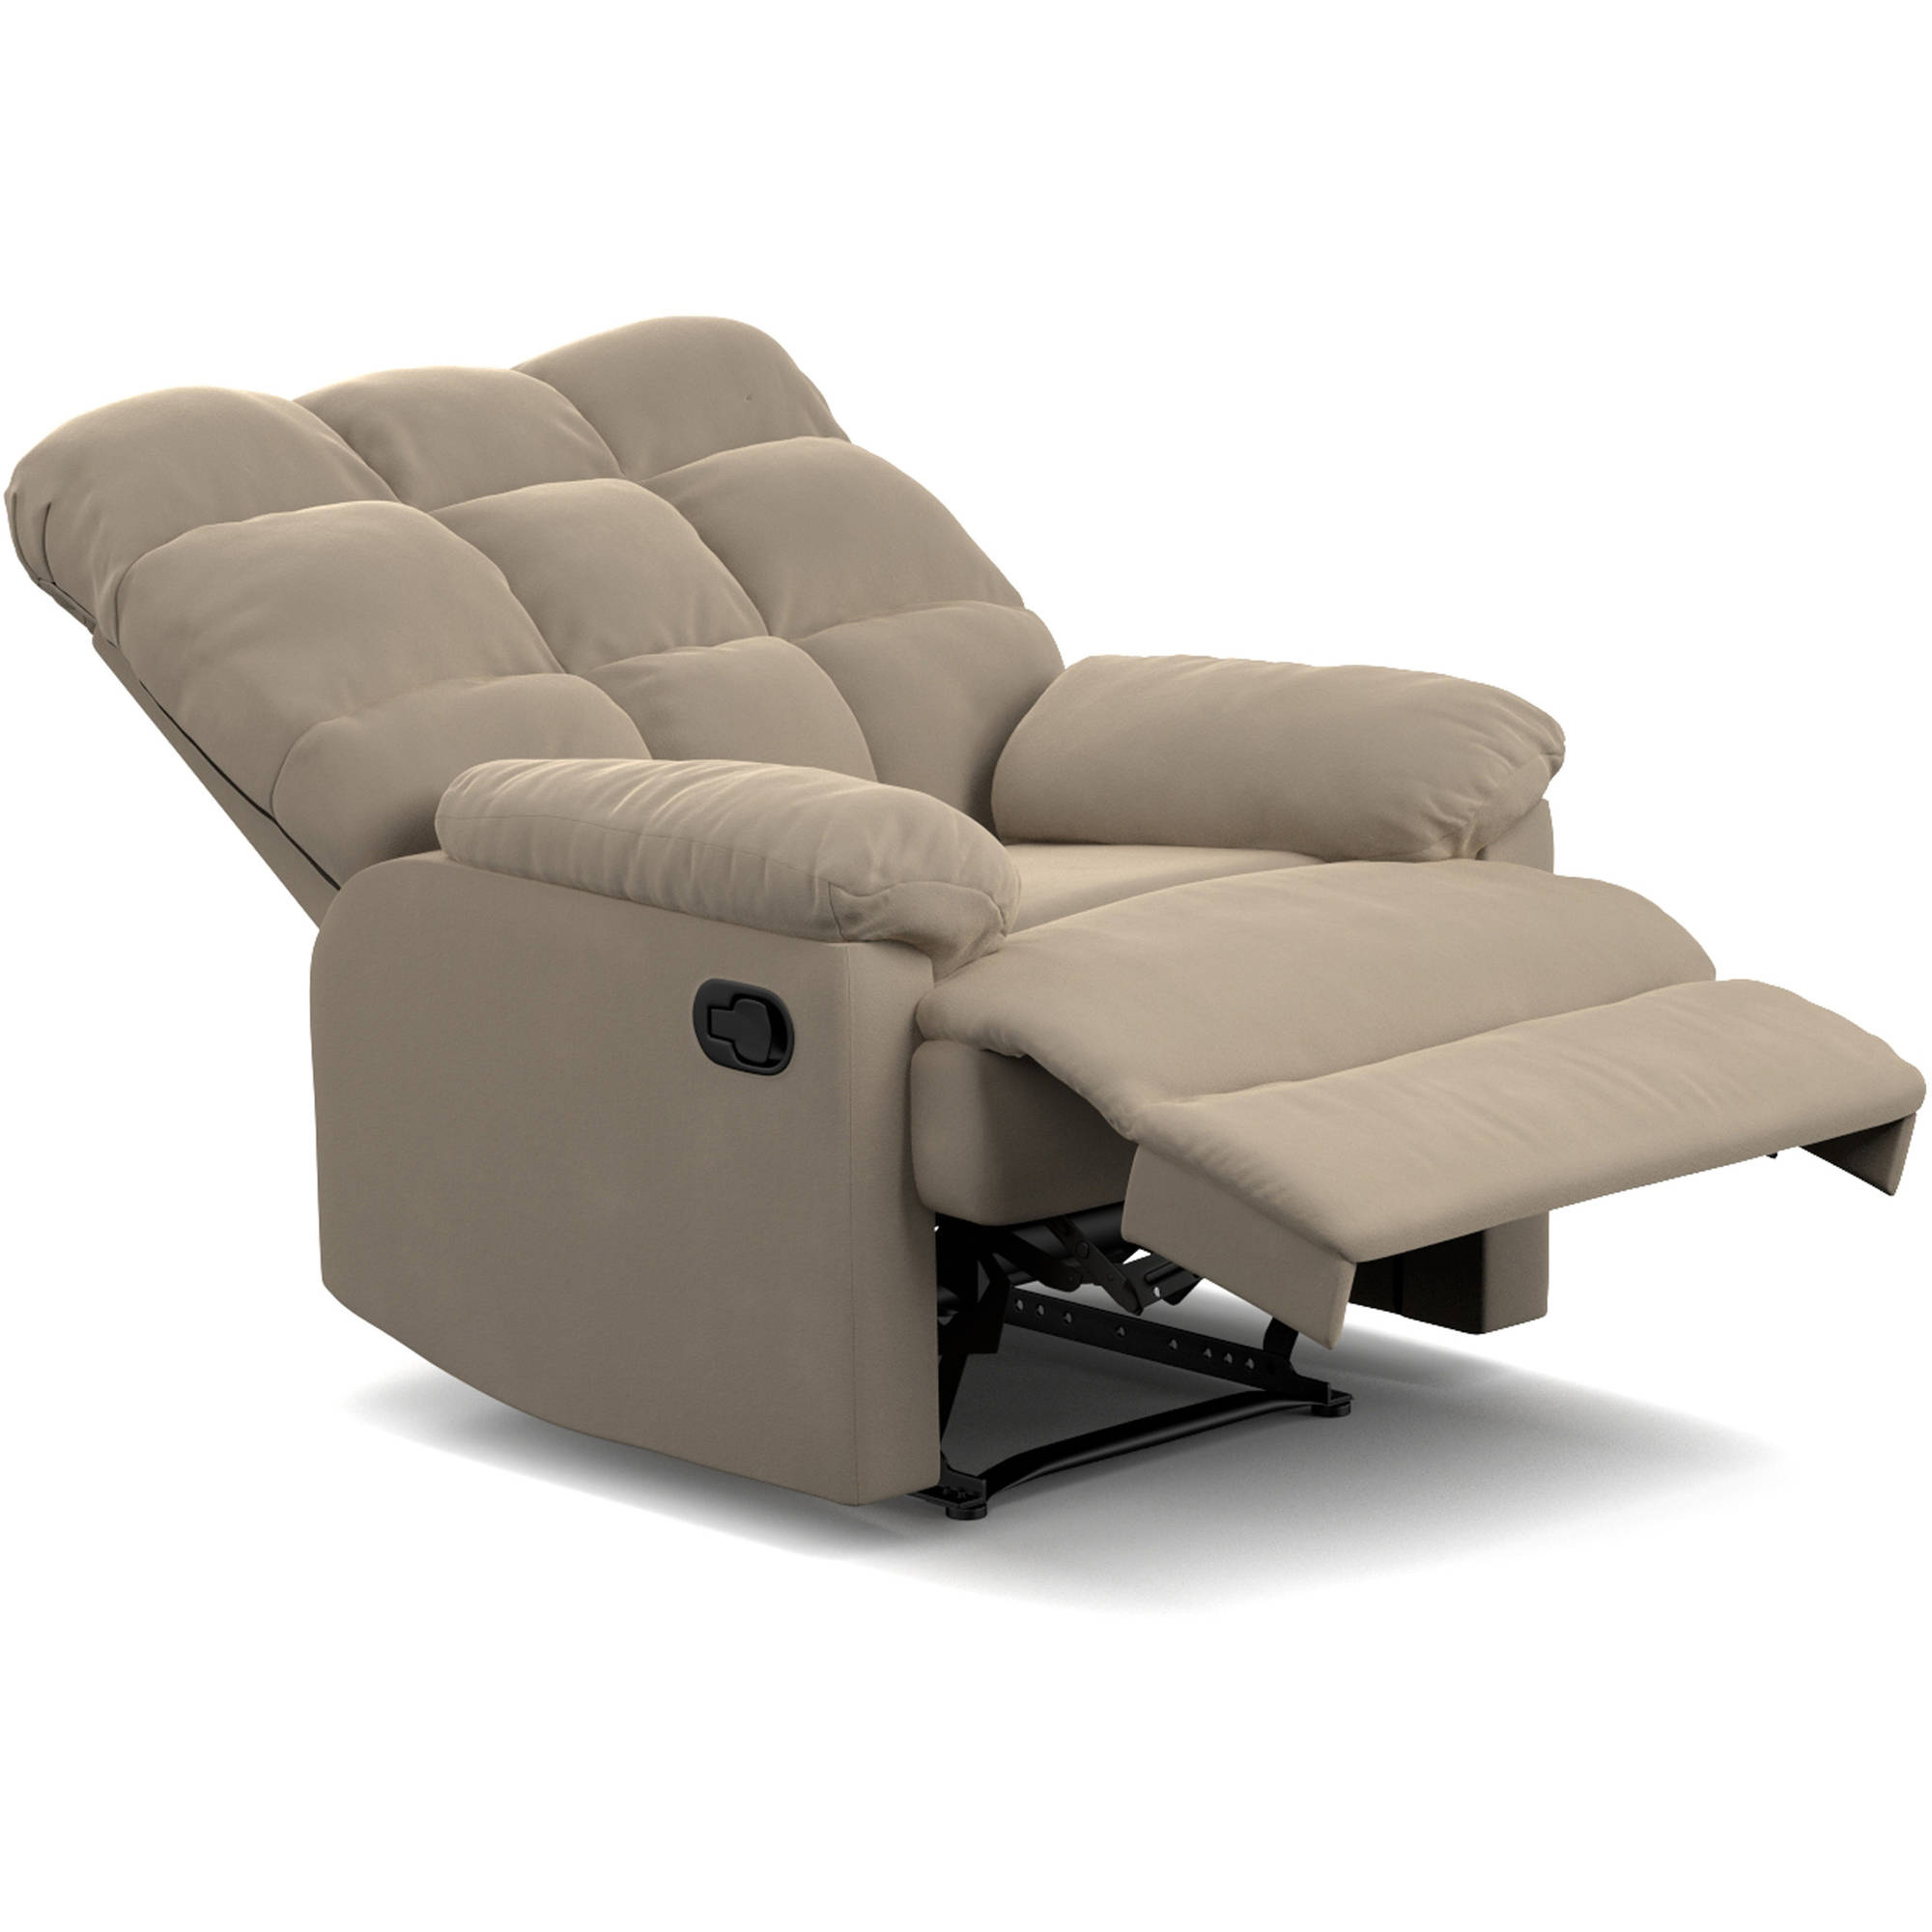 ProLounger Wall Hugger Microfiber Recliner Set of 2 Multiple Colors - Walmart.com  sc 1 st  Walmart & ProLounger Wall Hugger Microfiber Recliner Set of 2 Multiple ... islam-shia.org